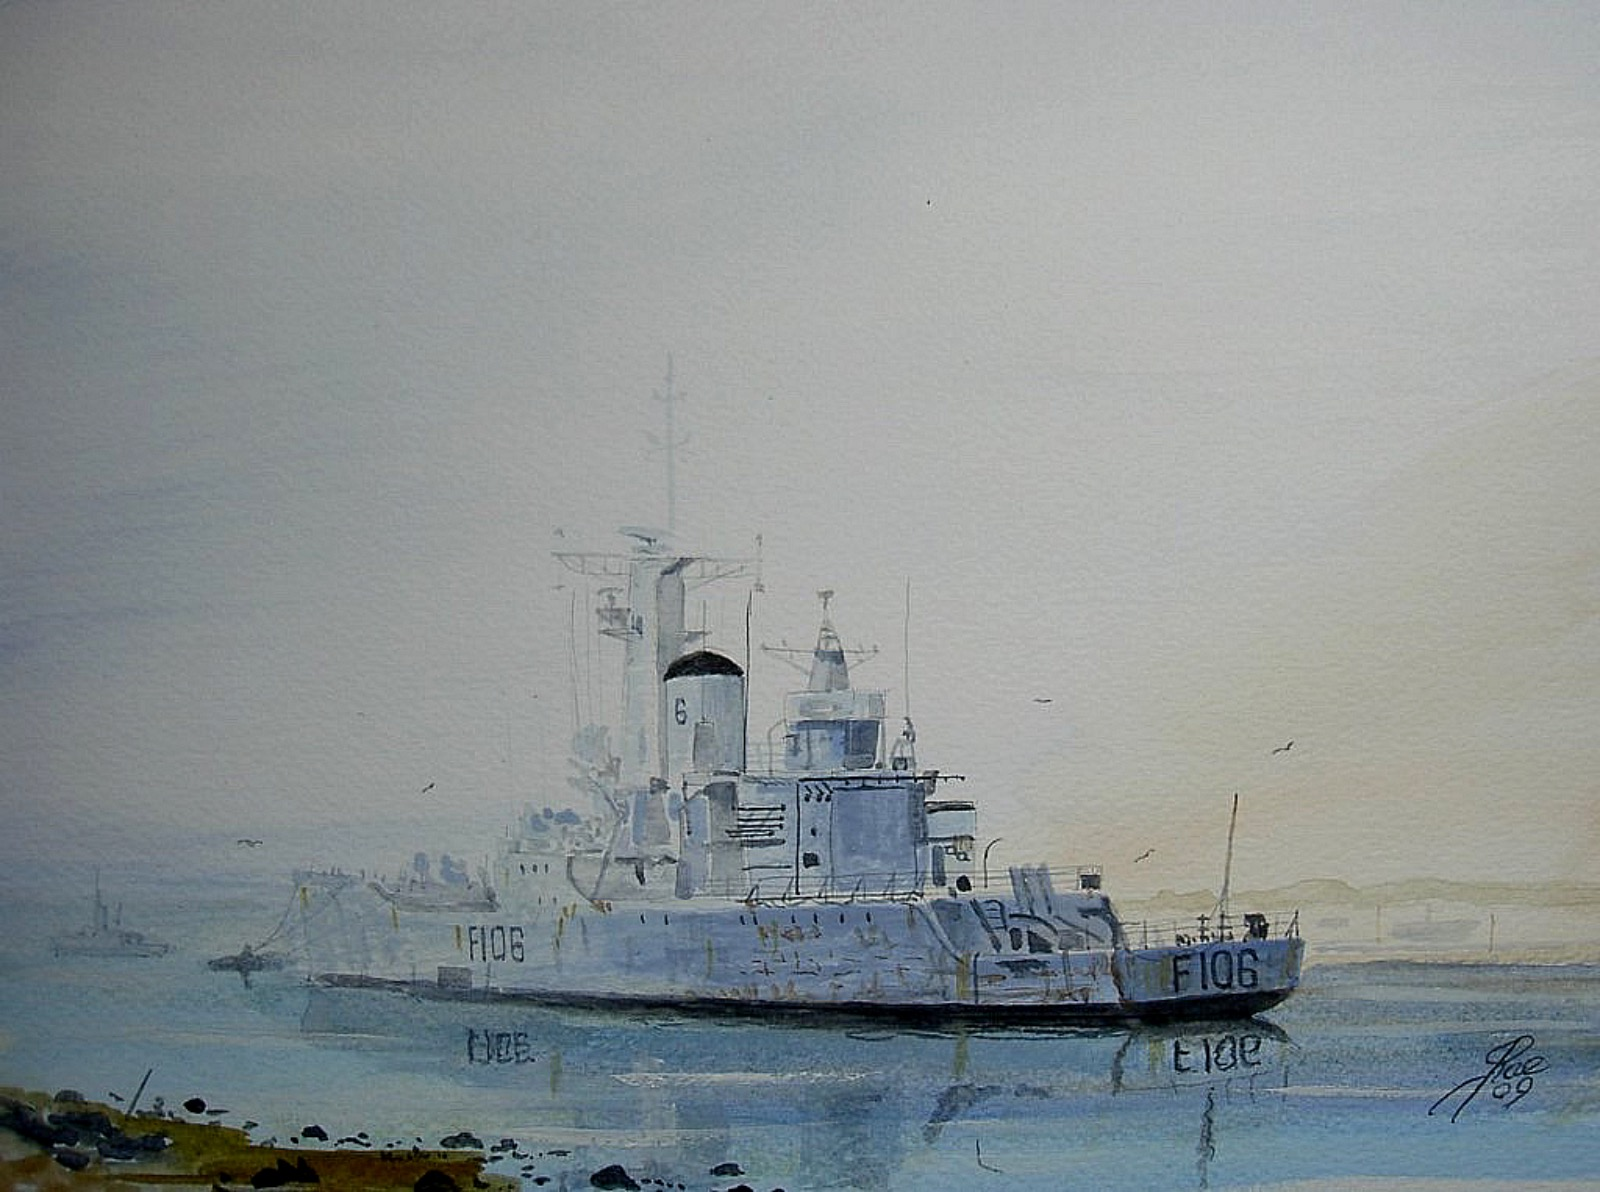 HMS Brighton awaiting disposal. Painted at low tide, didn't like it so painted the tide in.! 89430190_1470051916508436_7994350317422510080_o